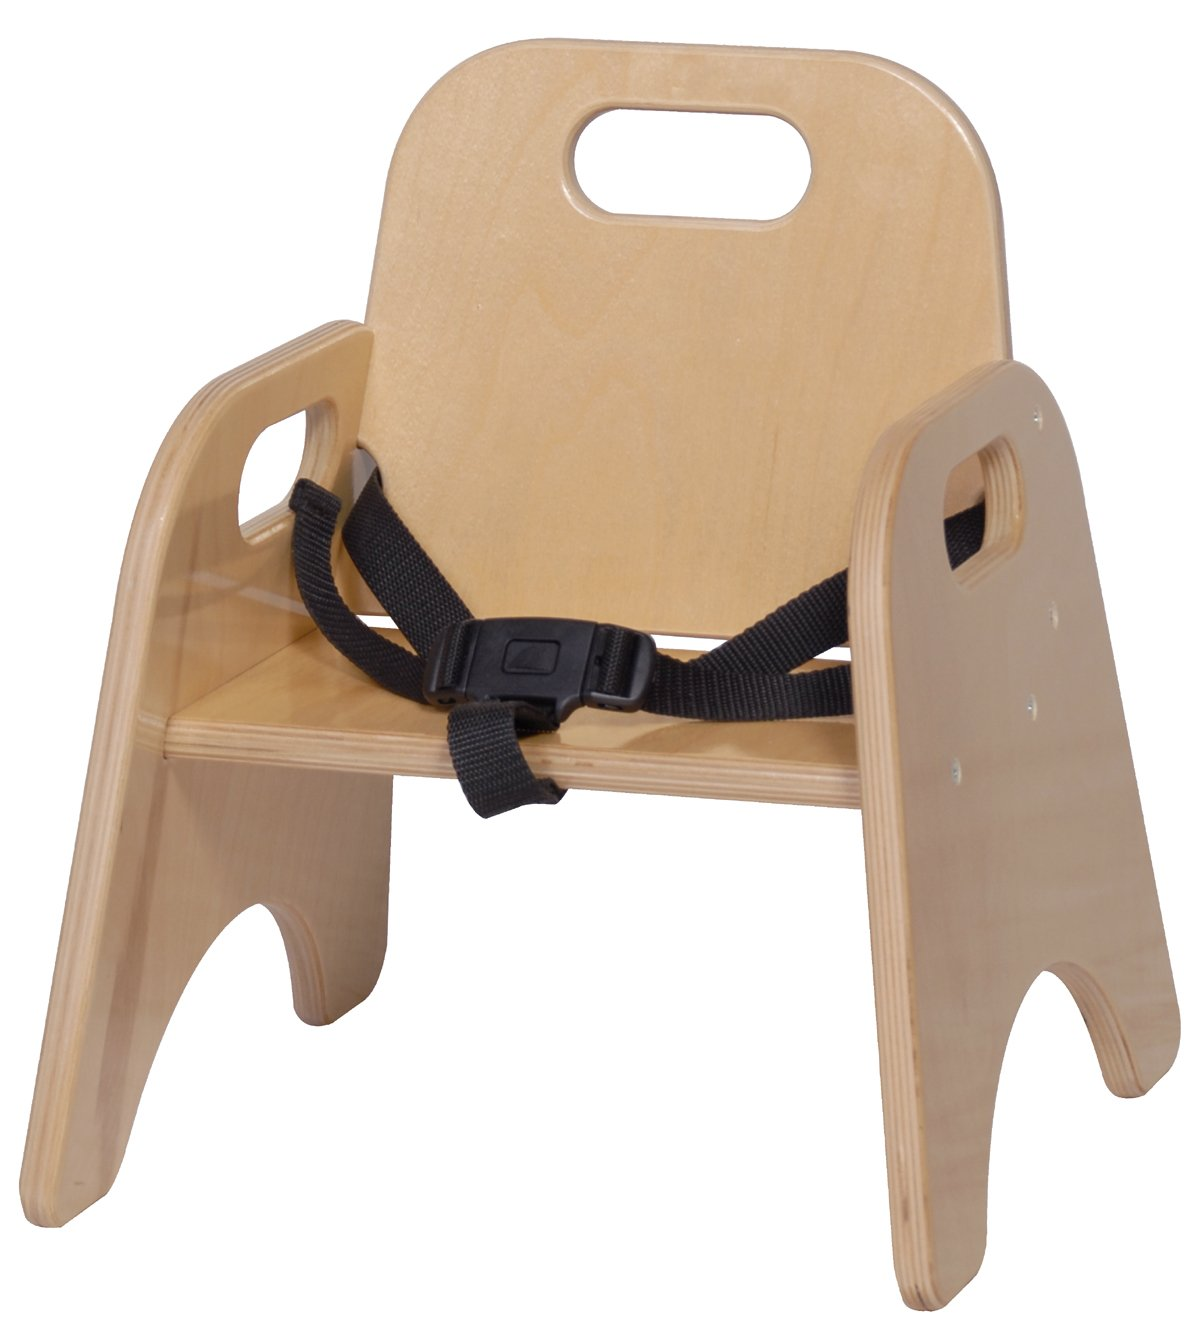 Steffy Wood Products 7-Inch Toddler Chair with Strap by Steffy Wood Products, Inc.